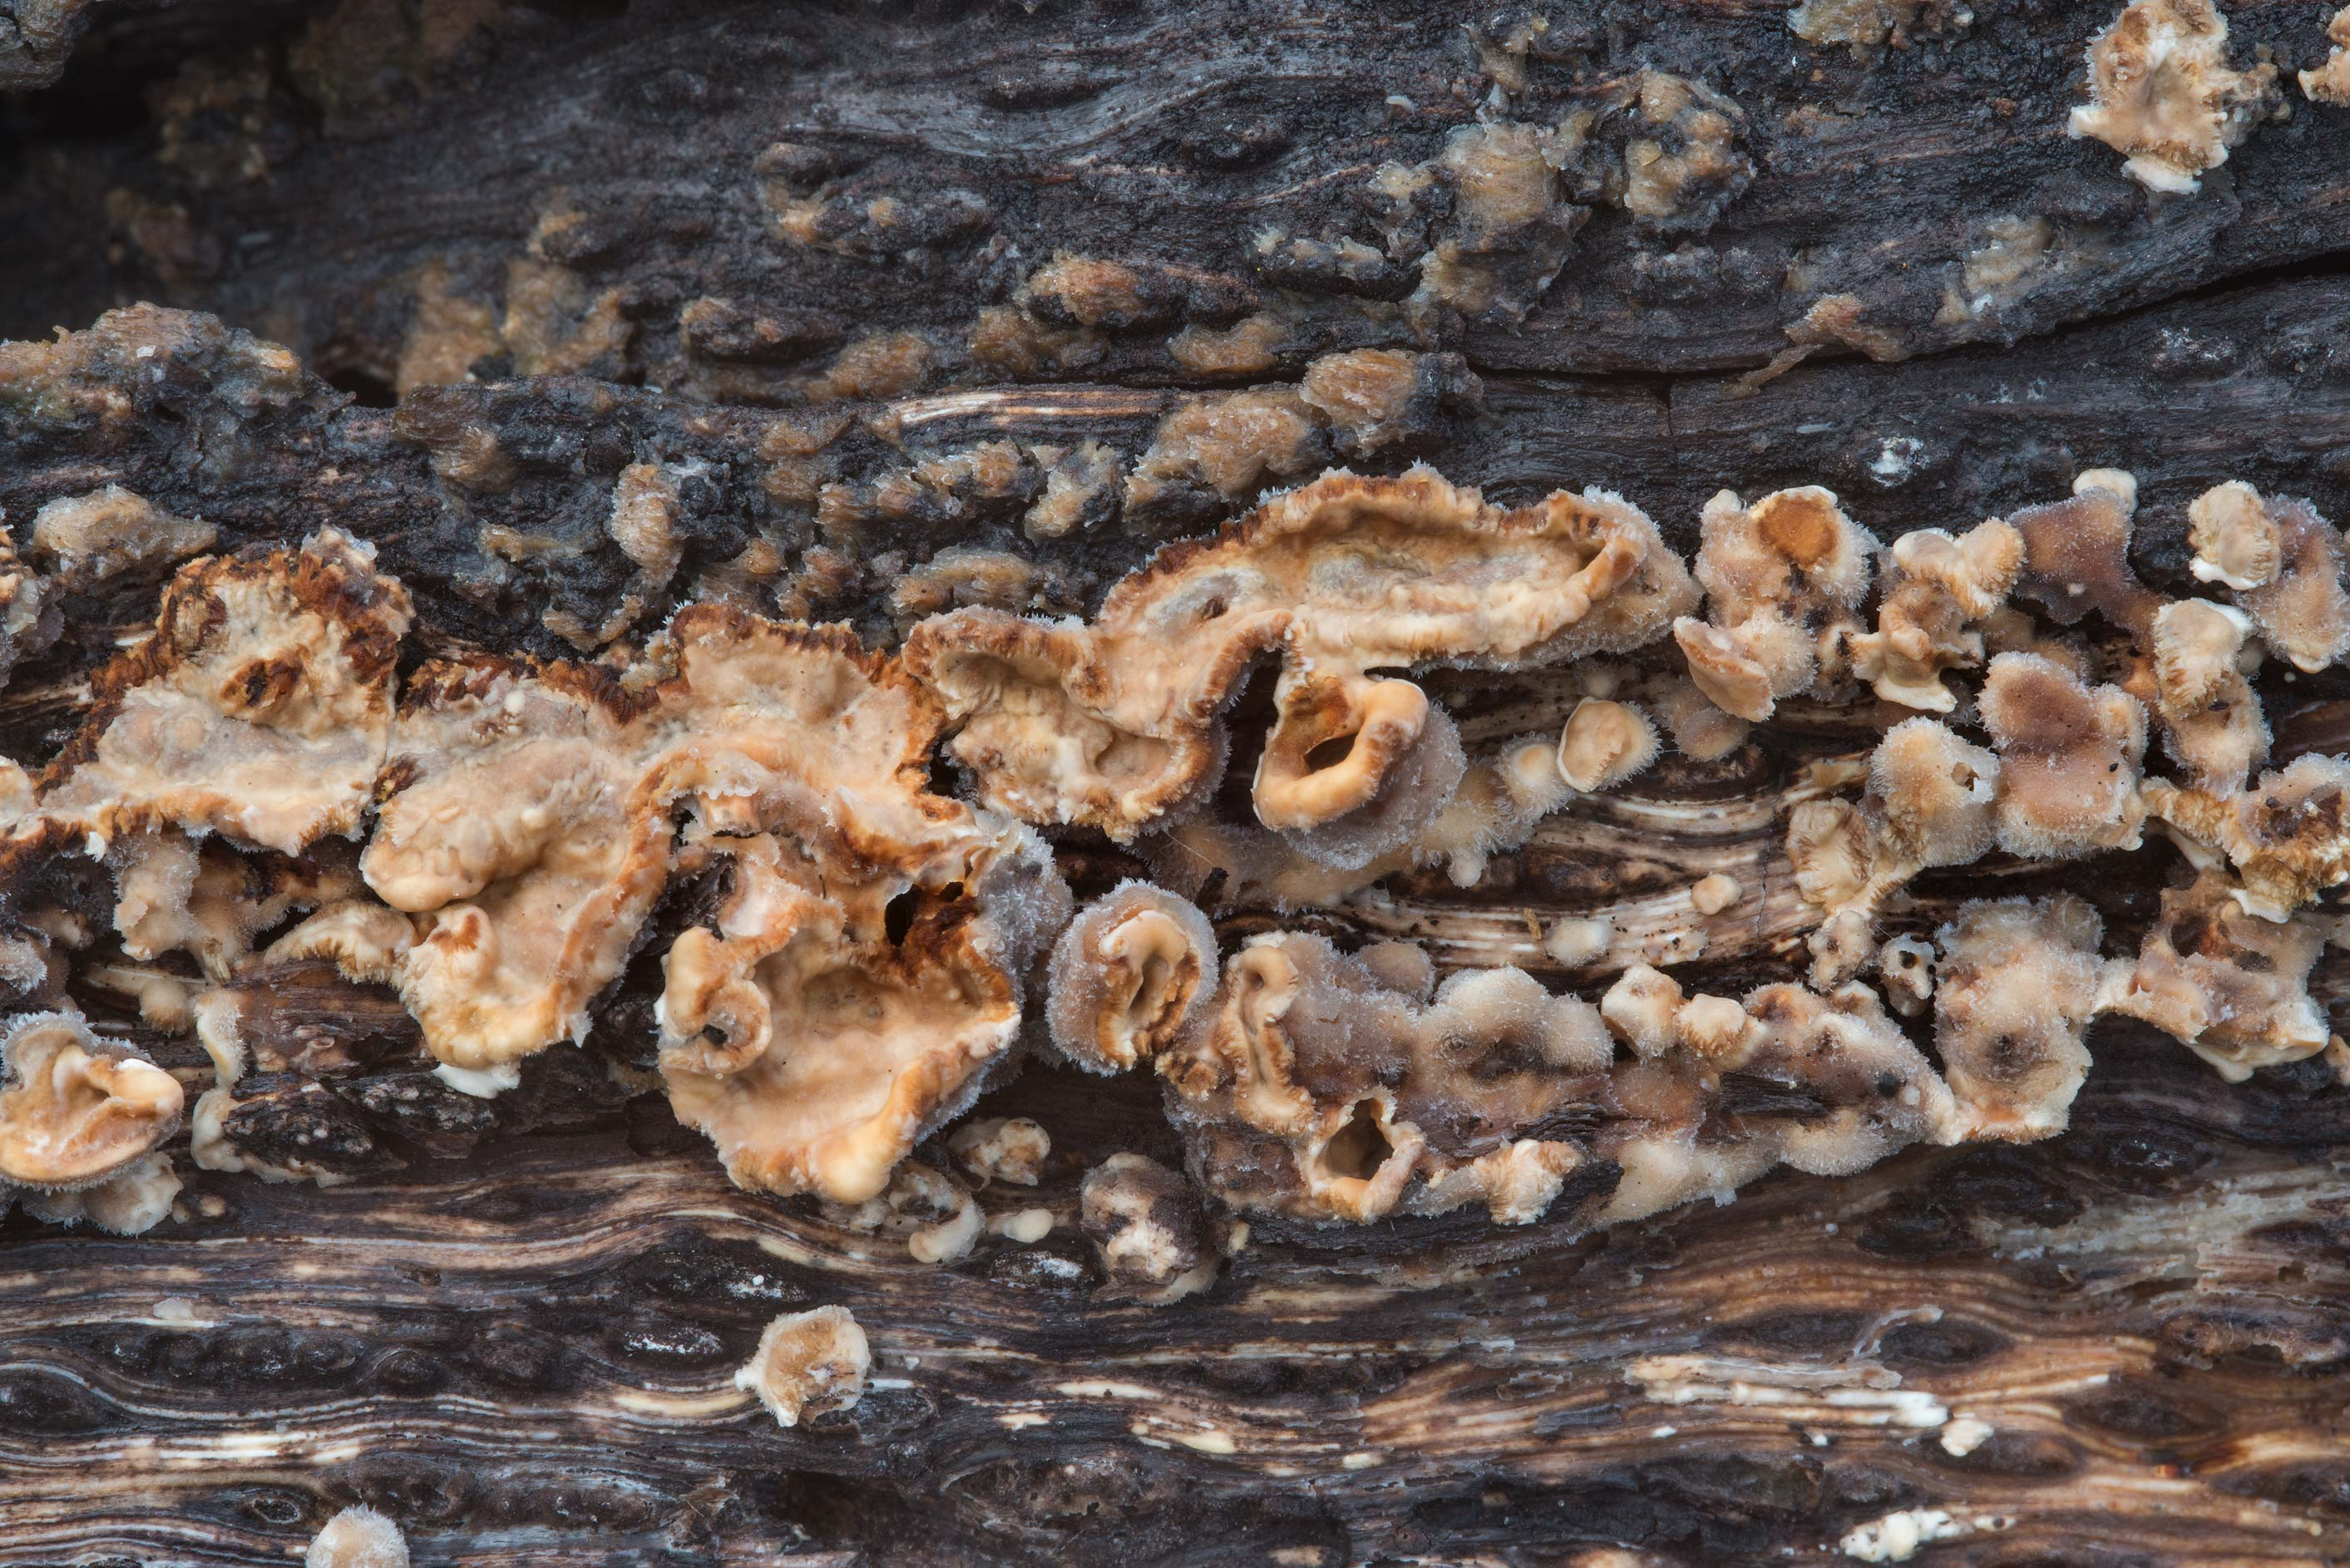 Stereum mushrooms on a log of an oak tree in Bee Creek Park. College Station, Texas